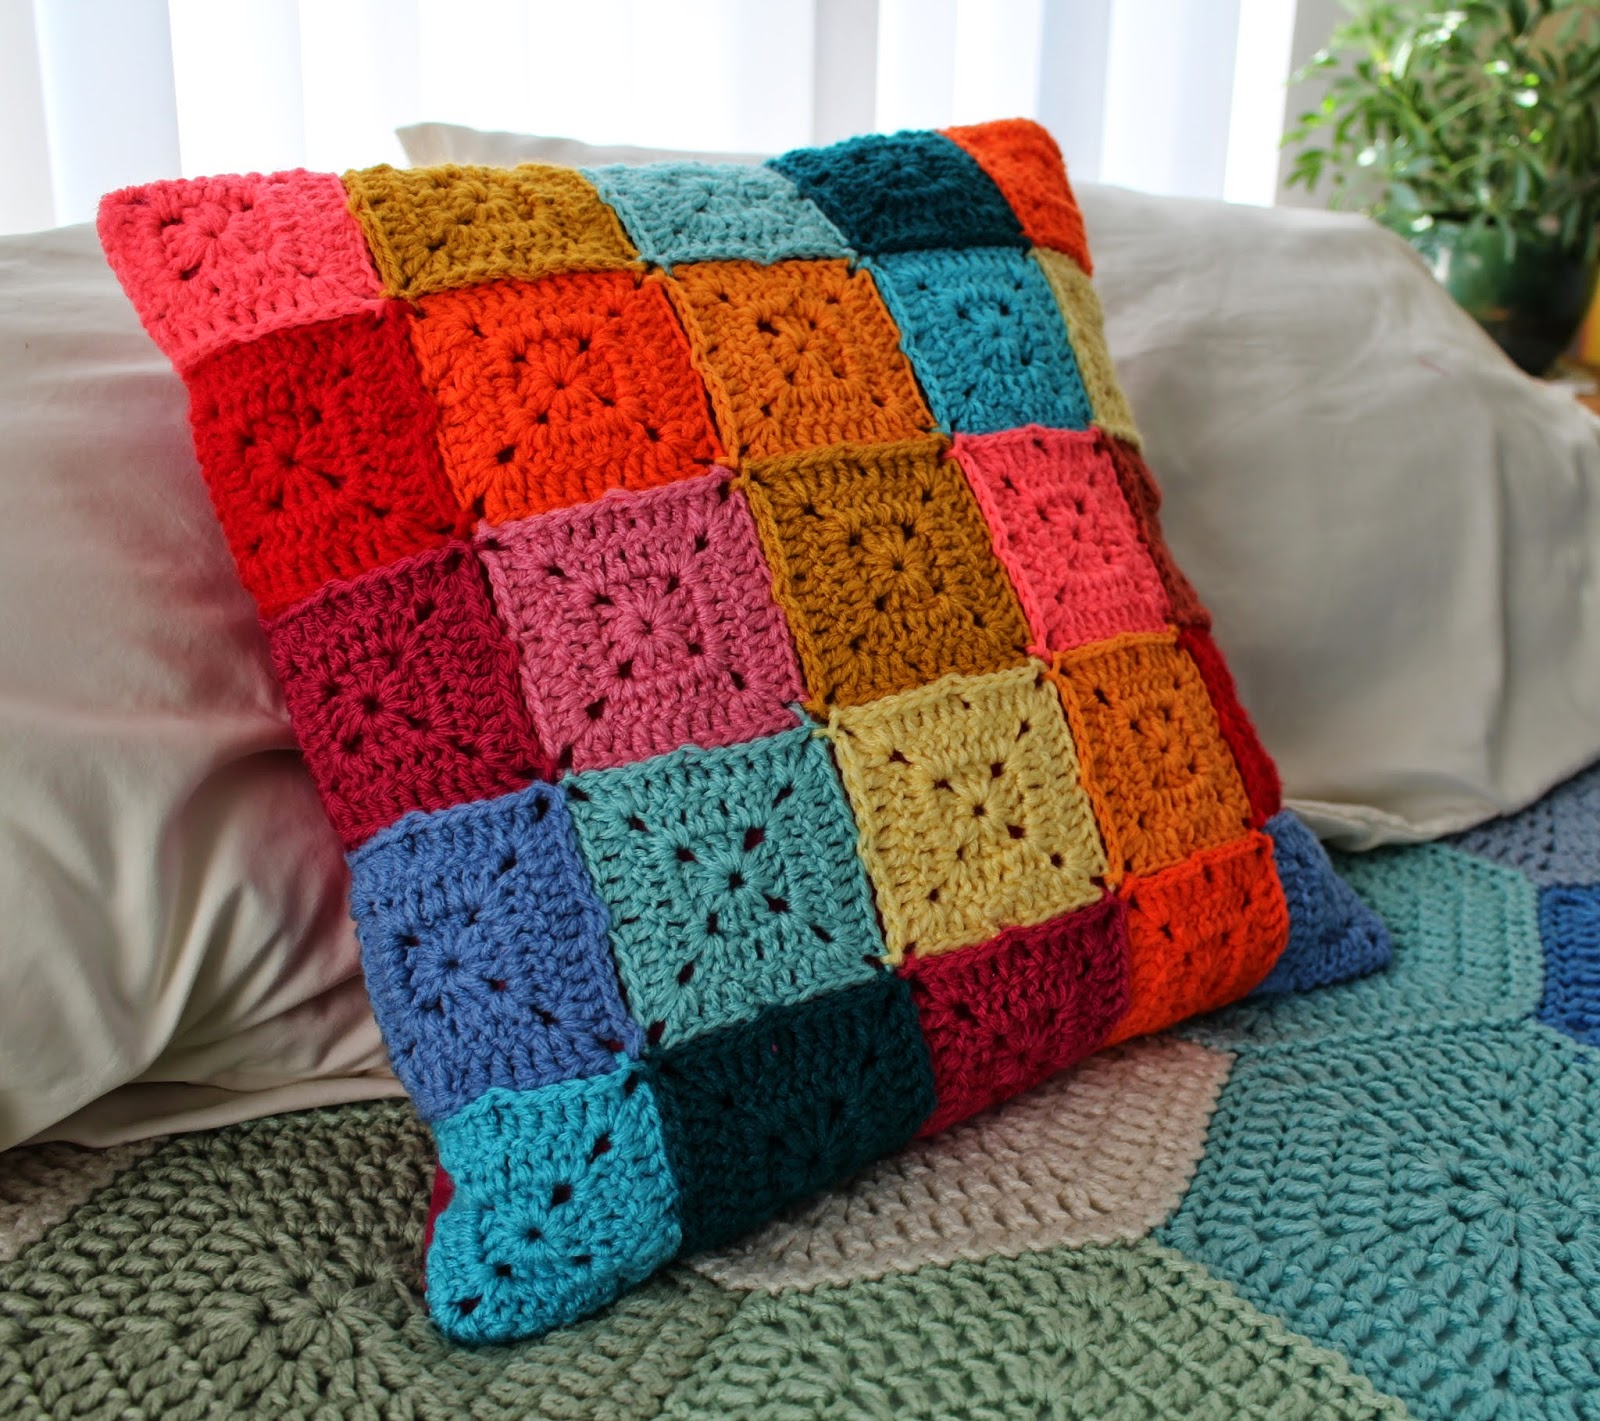 http://livelycrochet.blogspot.com/2014/05/pillow-sham-tutorial.html